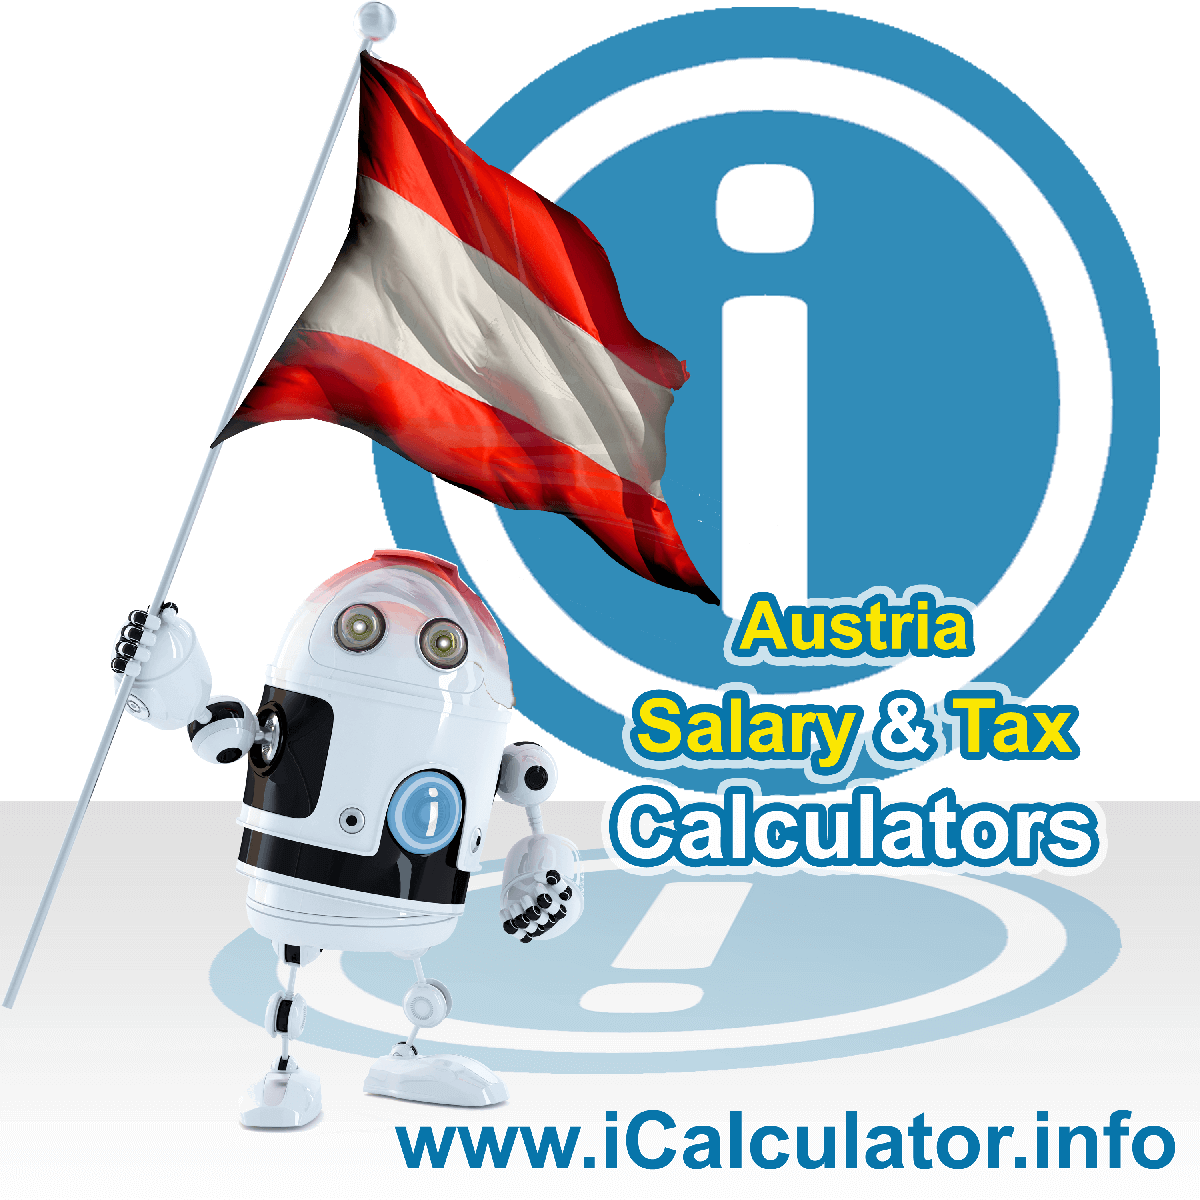 Austria Wage Calculator. This image shows the Austria flag and information relating to the tax formula for the Austria Tax Calculator